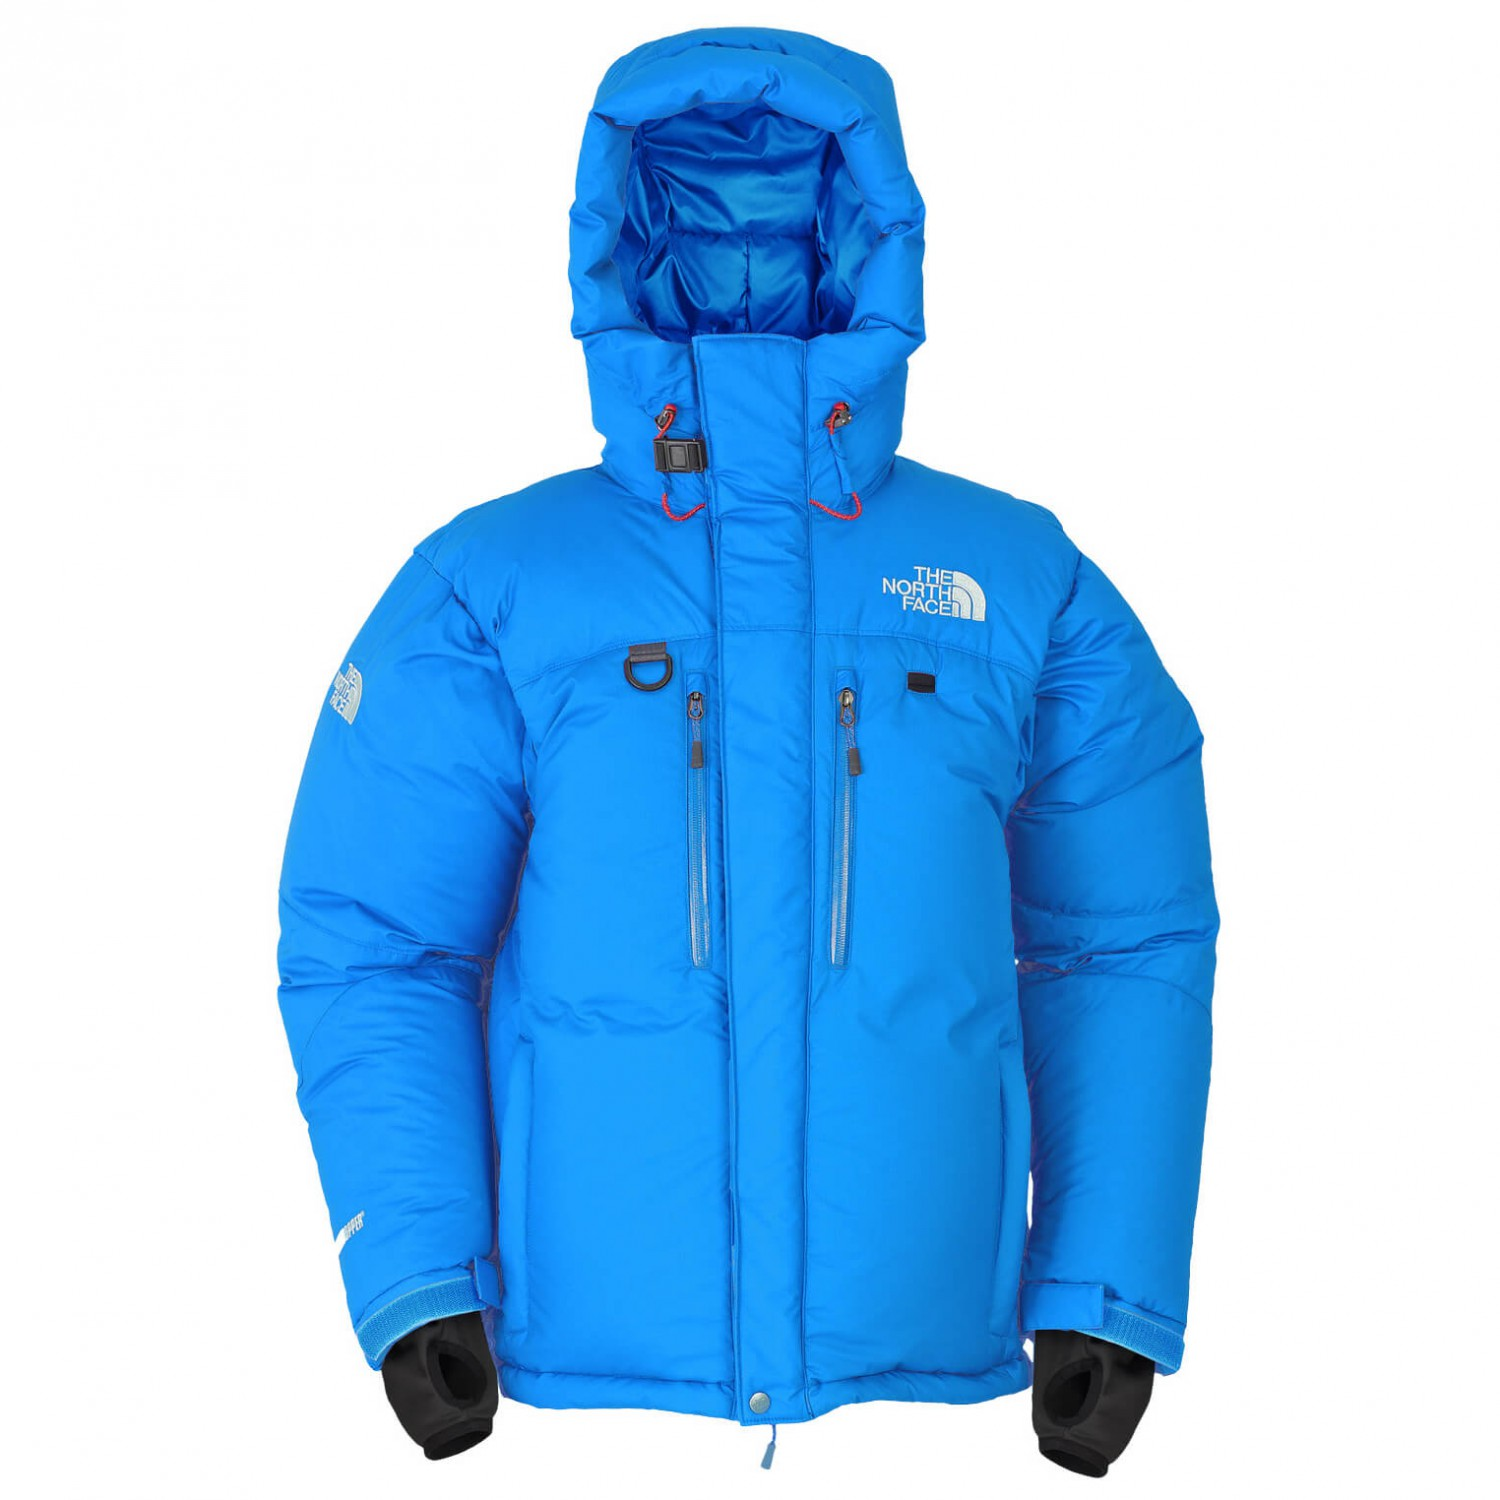 The North Face Winterjacke >> The North Face Himalayan Parka - Expeditionsjacke online kaufen | Bergfreunde.de